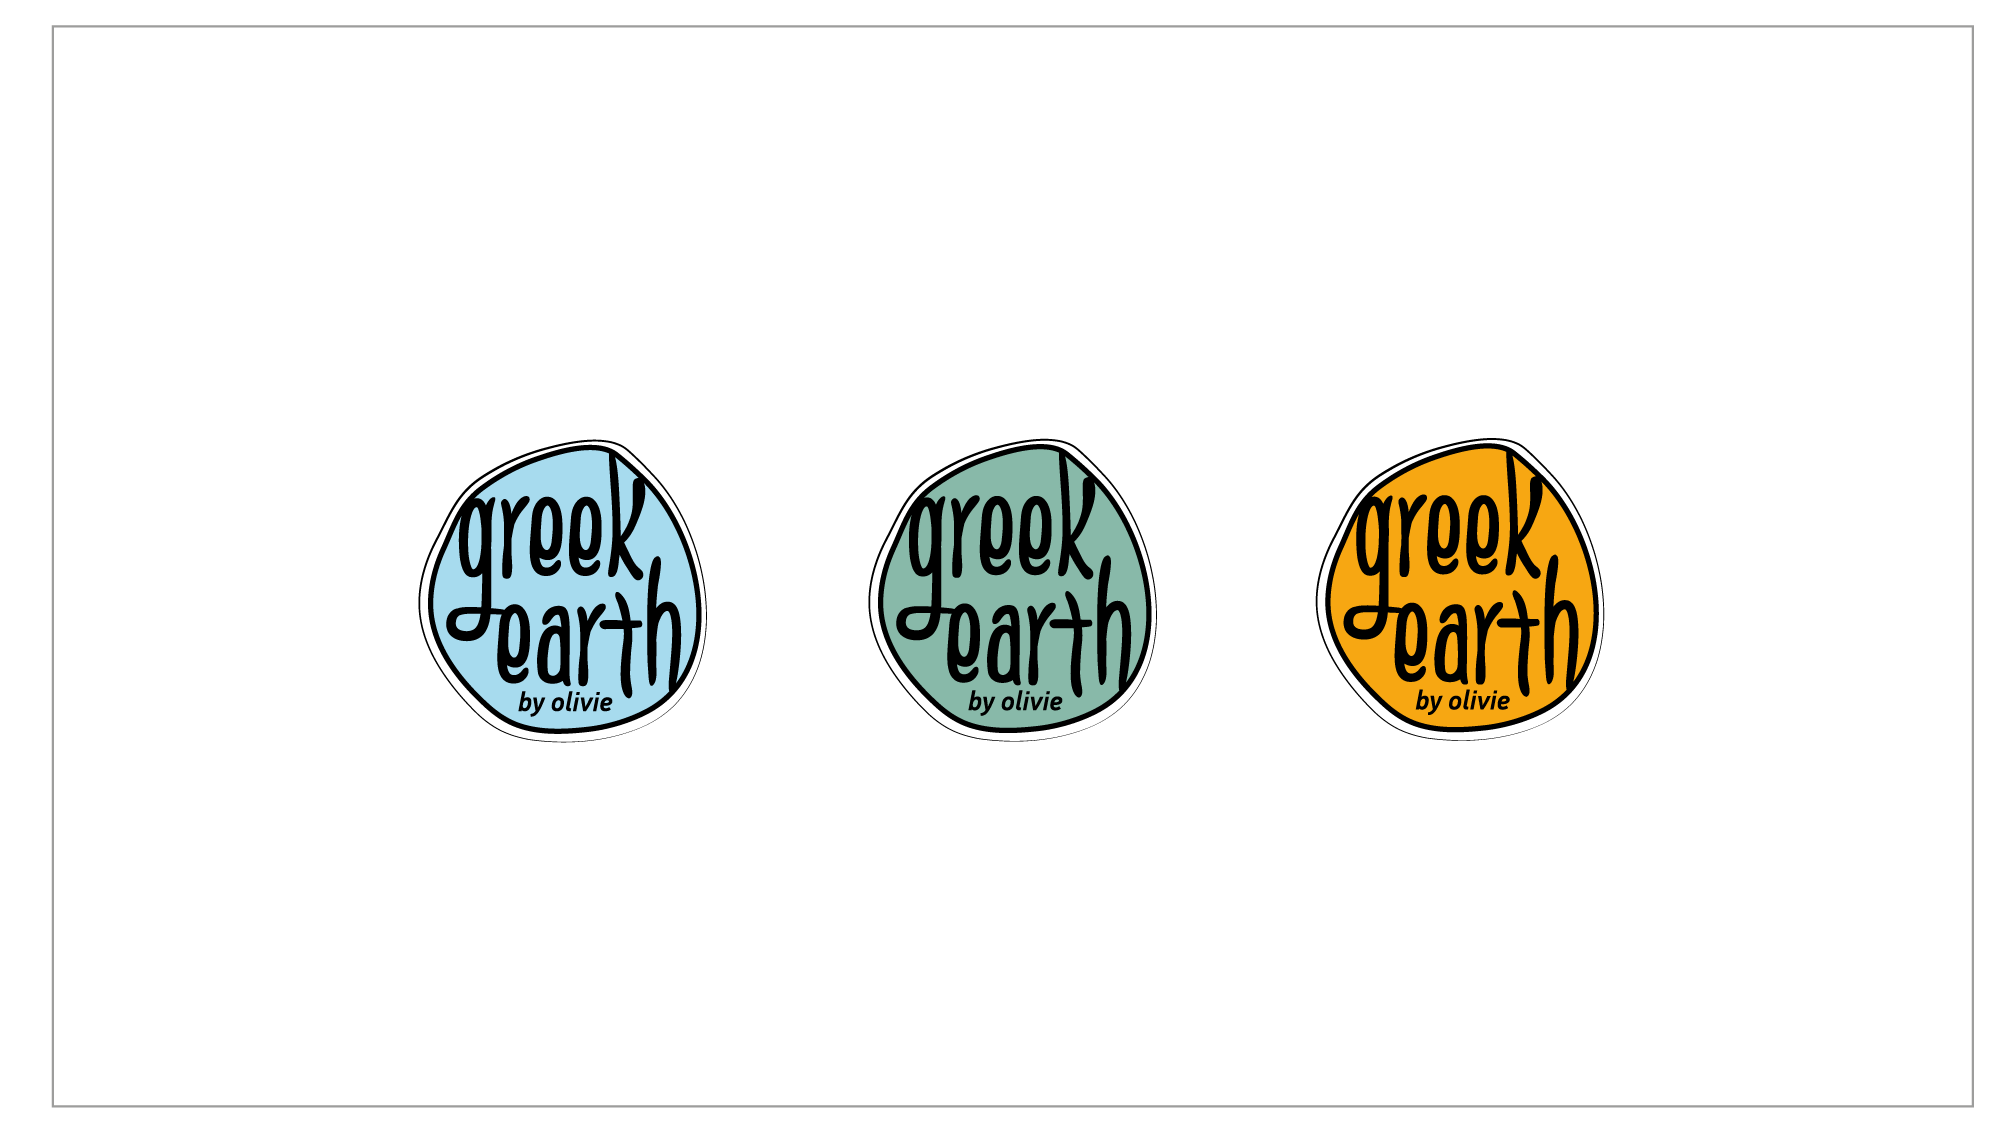 LOGO GREEK EARTH